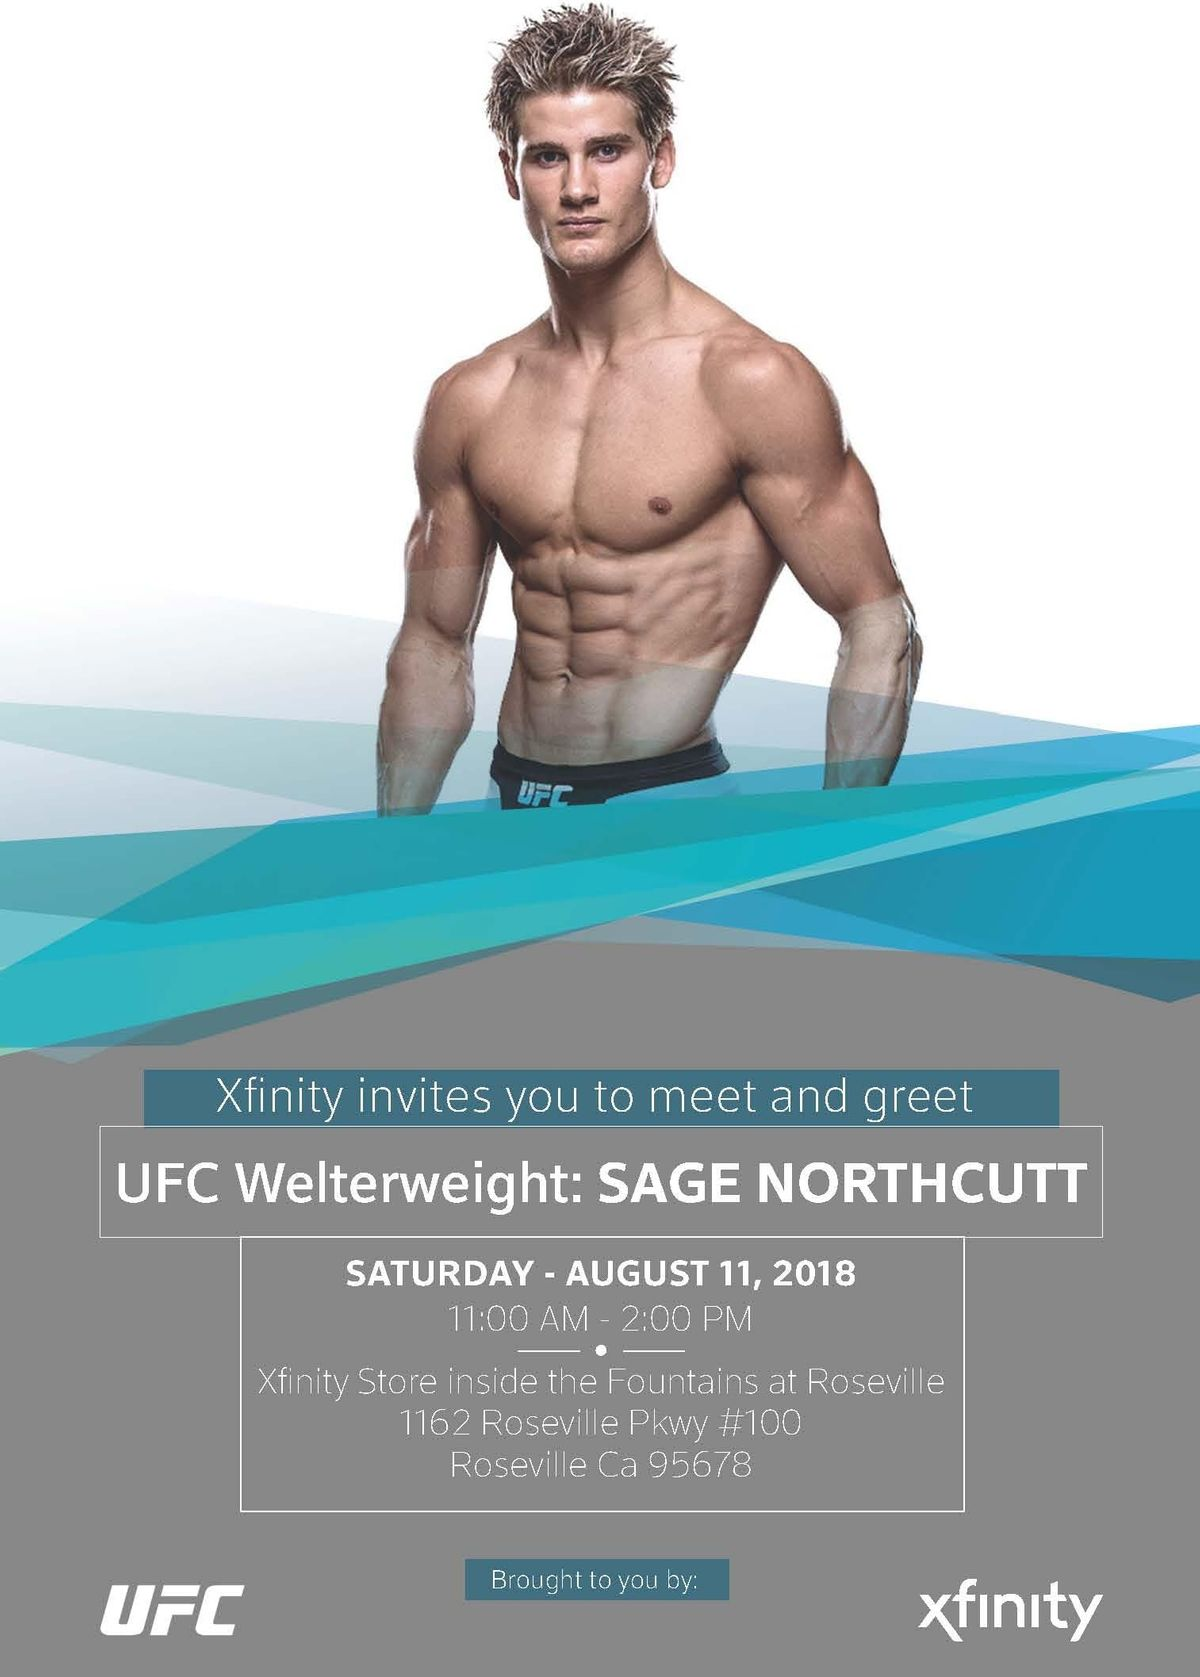 Ufc Meet Greet With Sage Northcutt At Xfinity Store Roseville